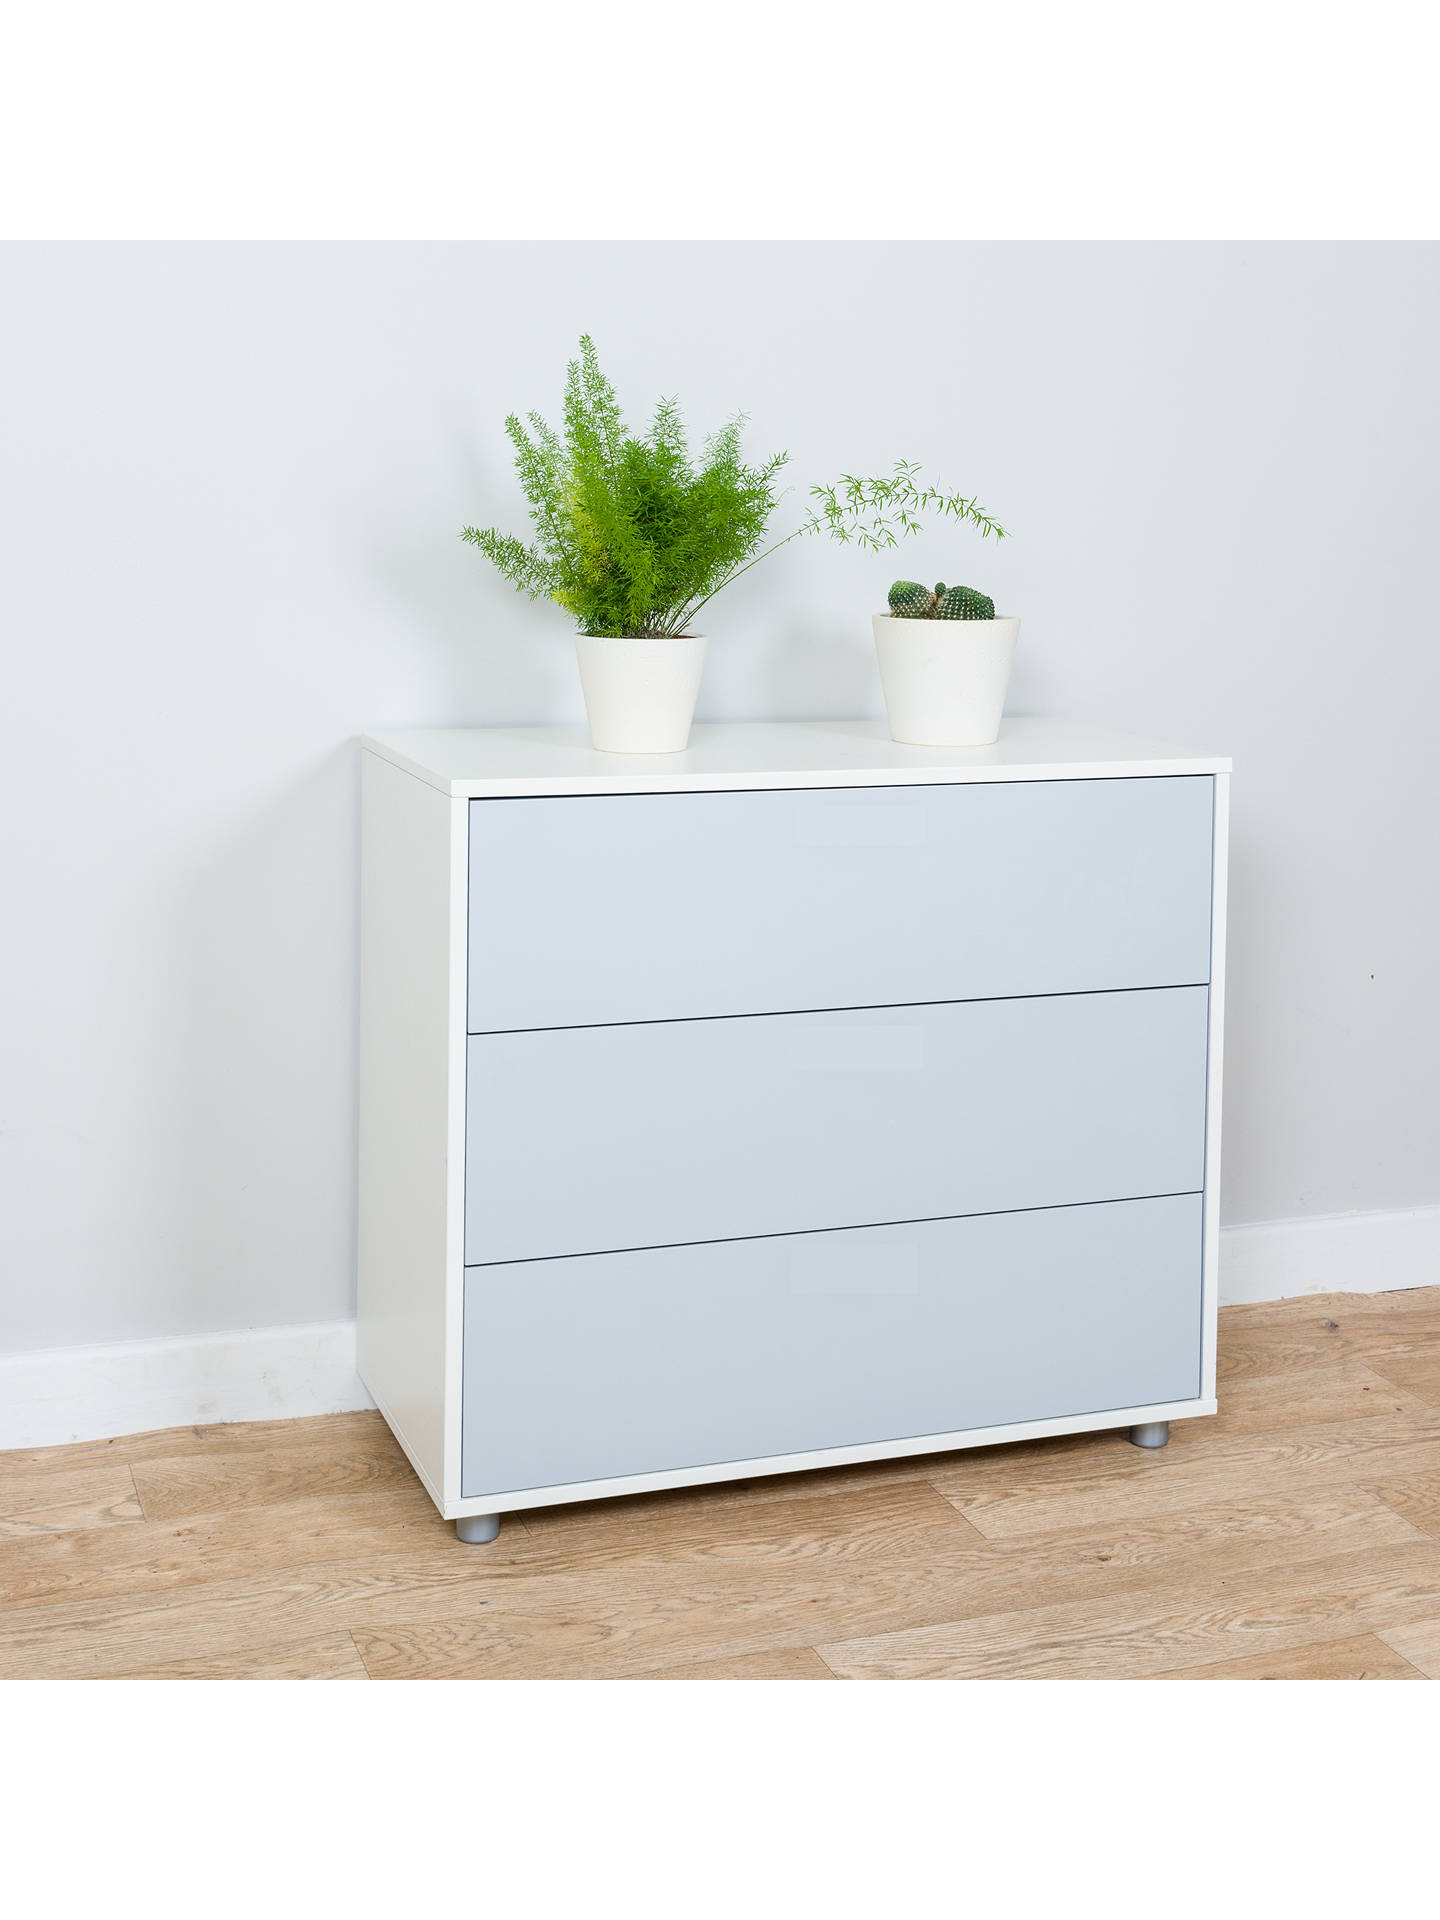 Buy Stompa Uno S Plus 3 Drawer Chest, Grey Online at johnlewis.com